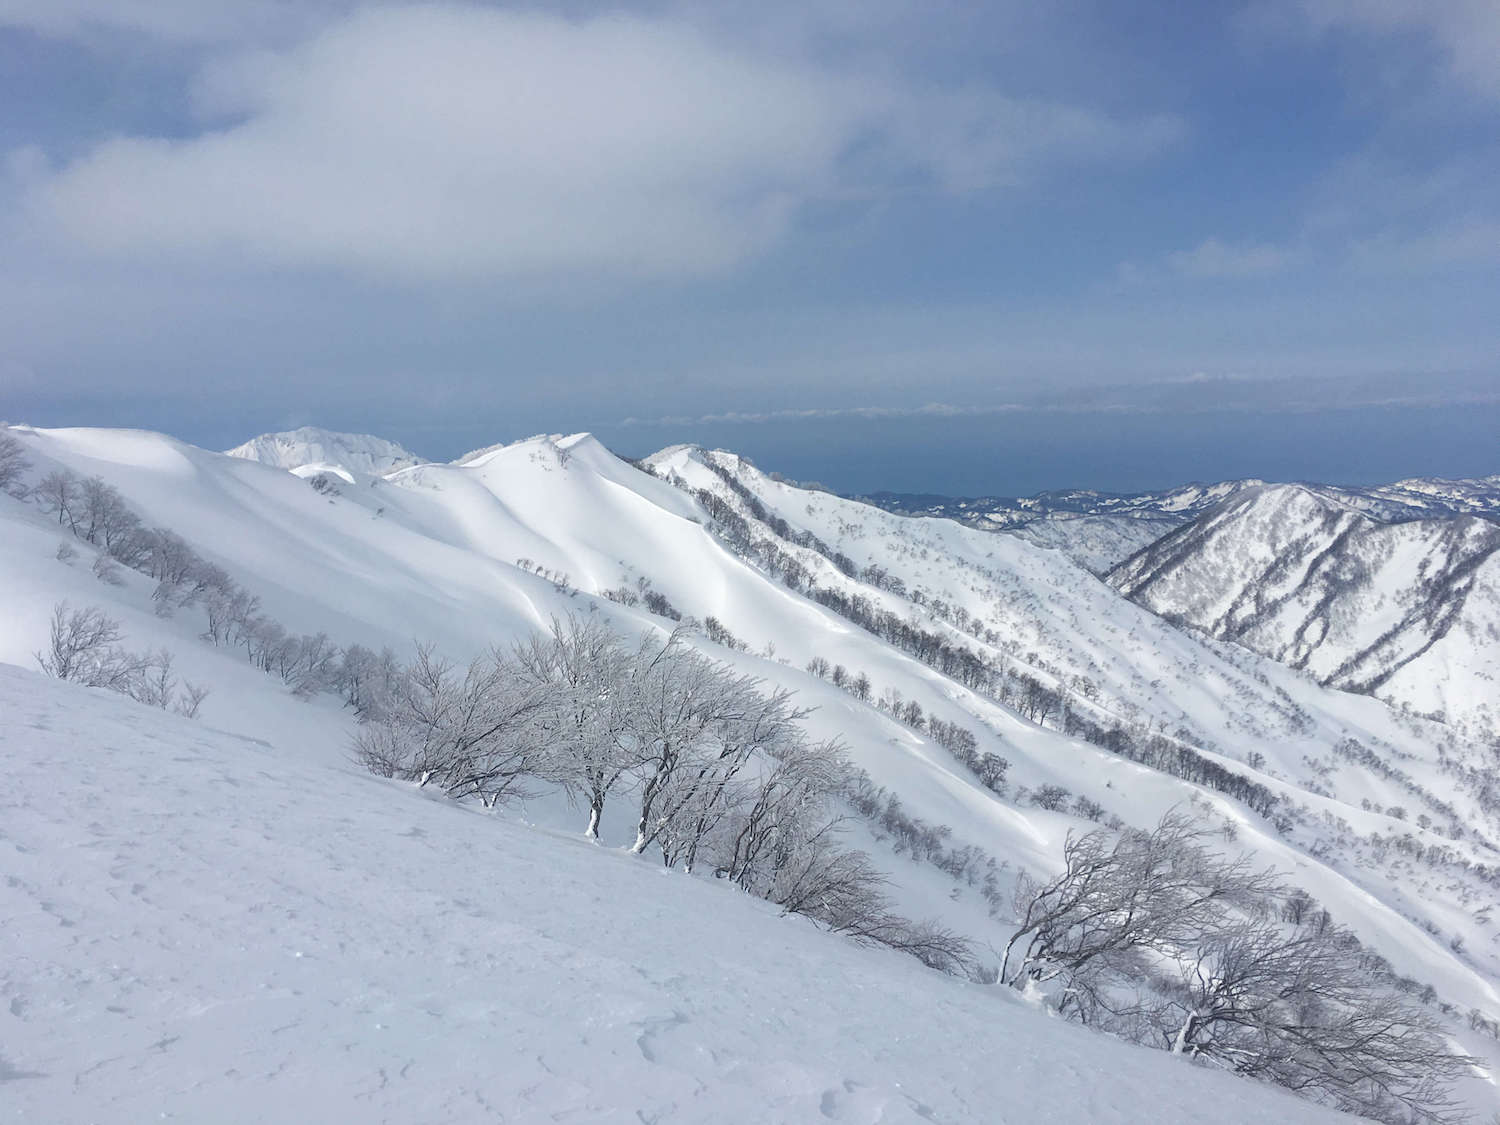 Myoko Kogen has wide open powder highways